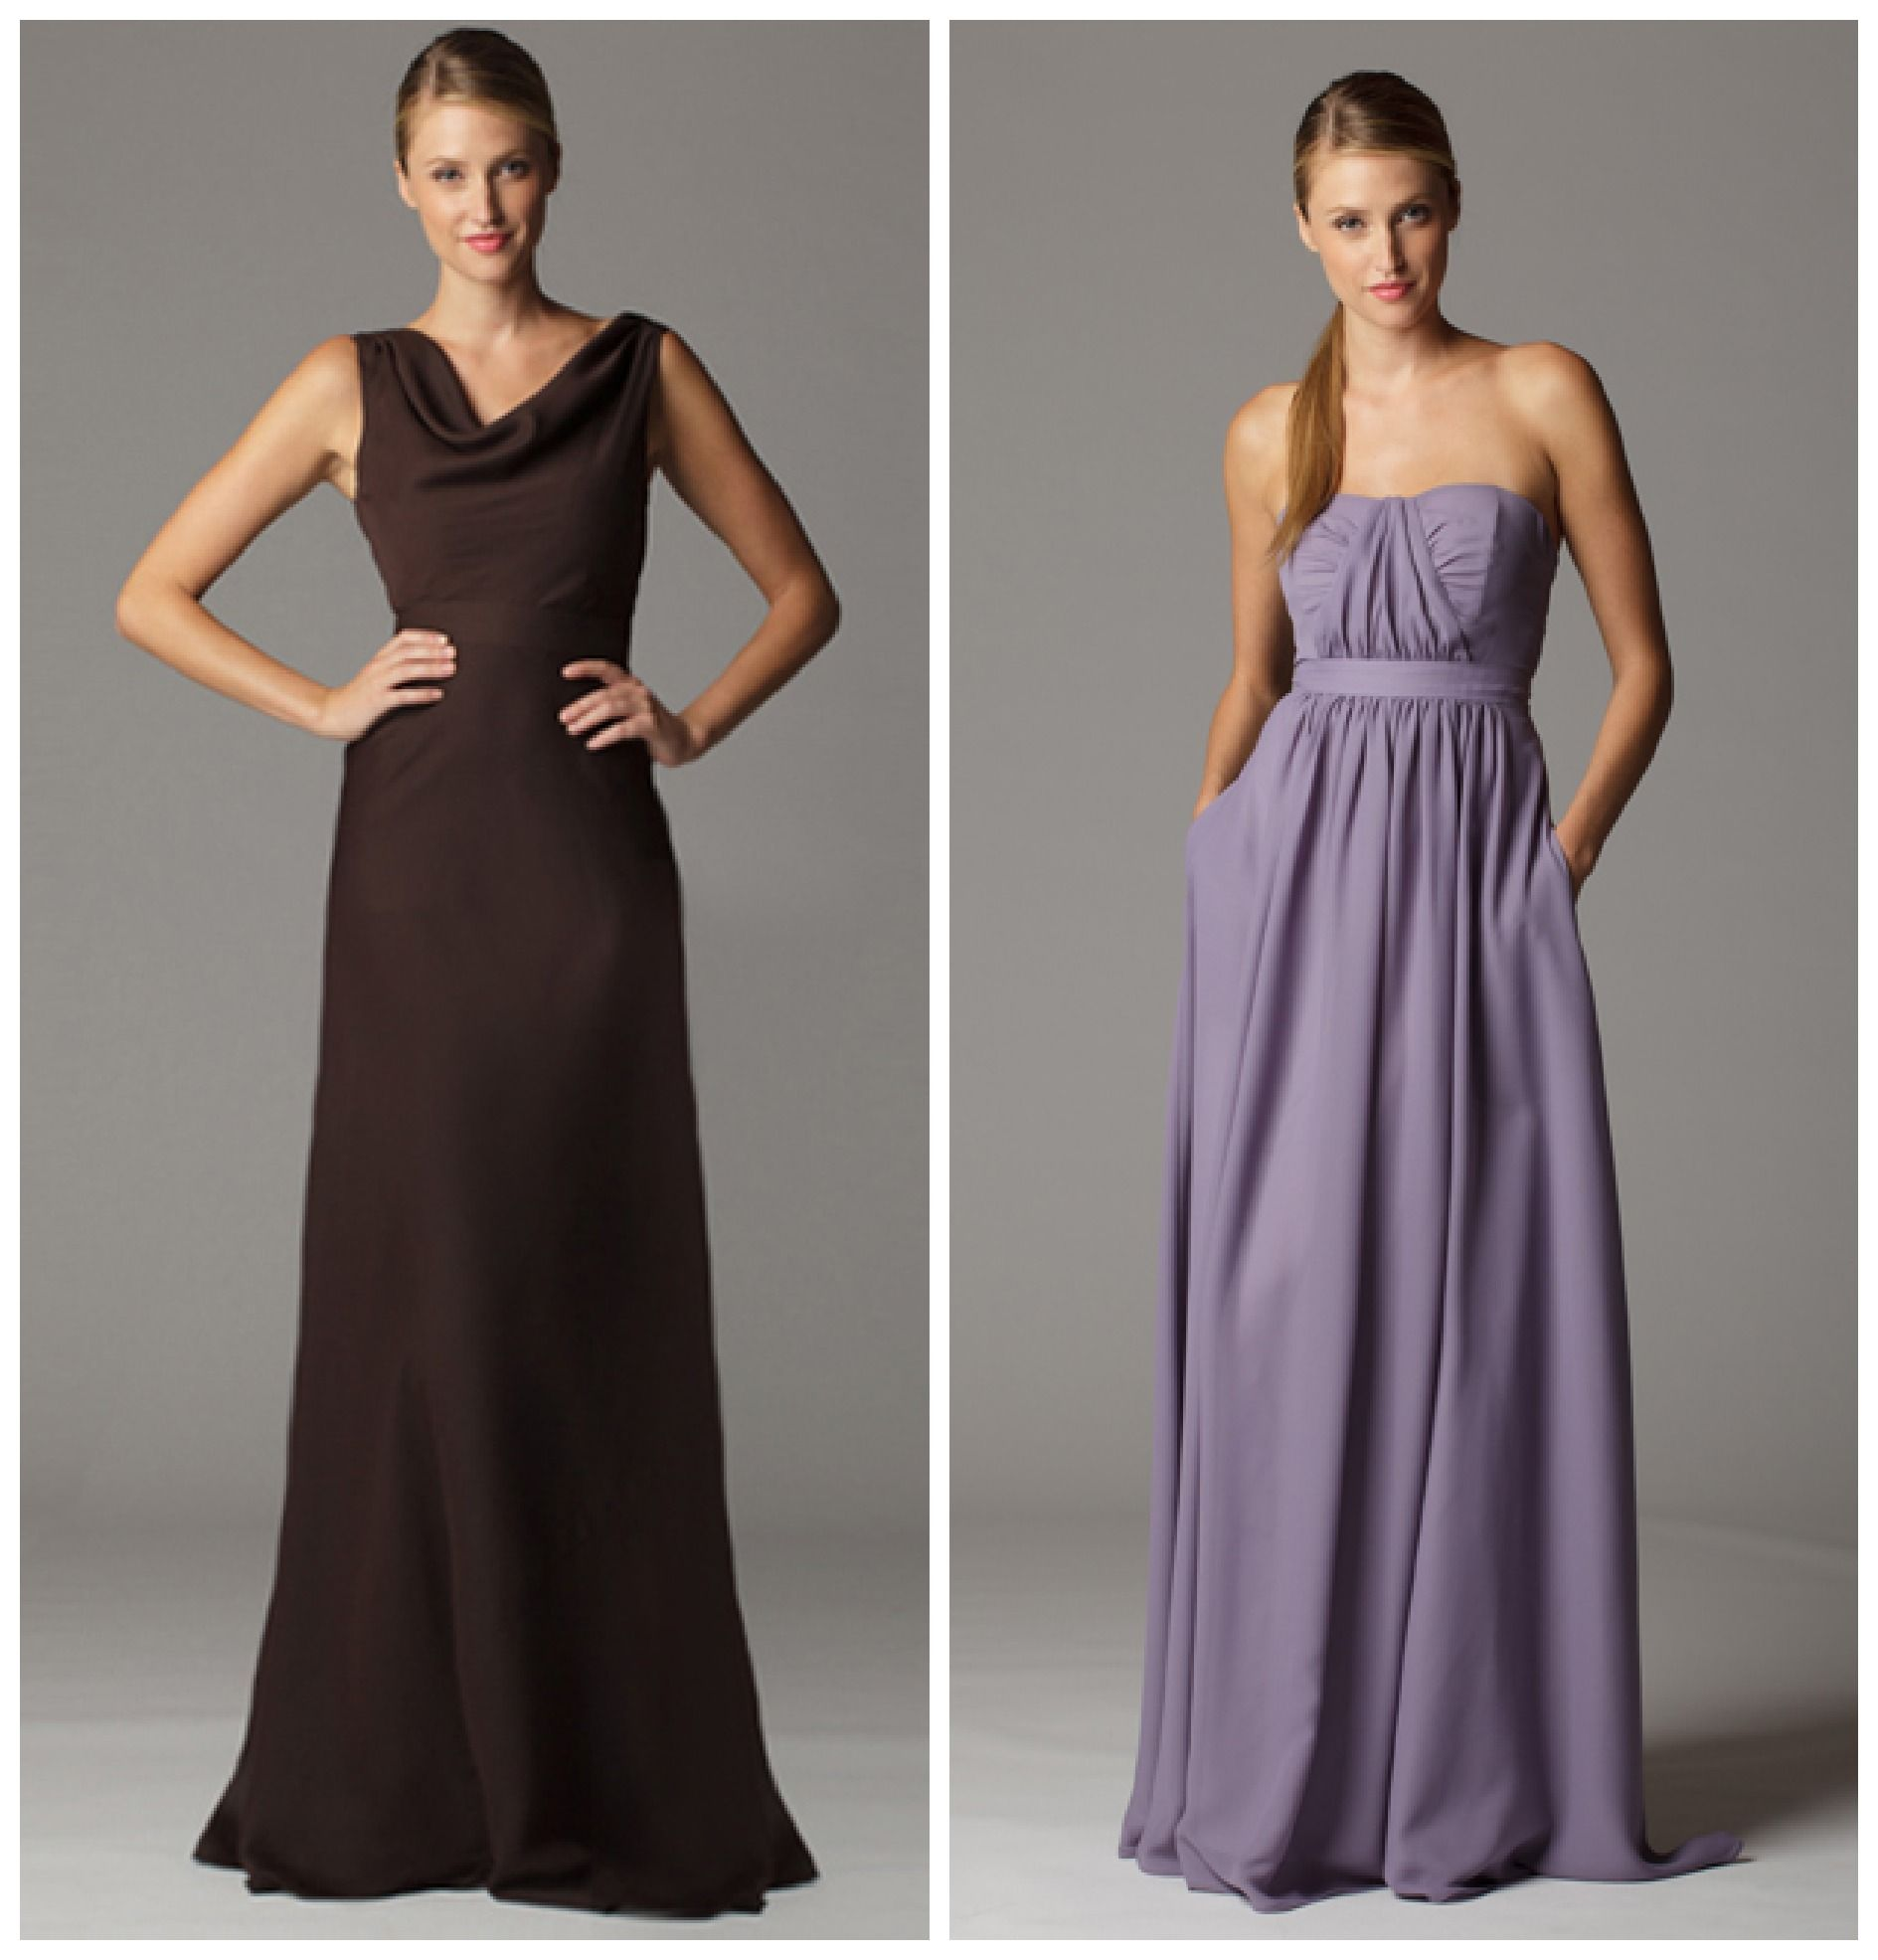 Soft & Flowy Bridesmaid Dresses | Purple dress, The o'jays and The ...